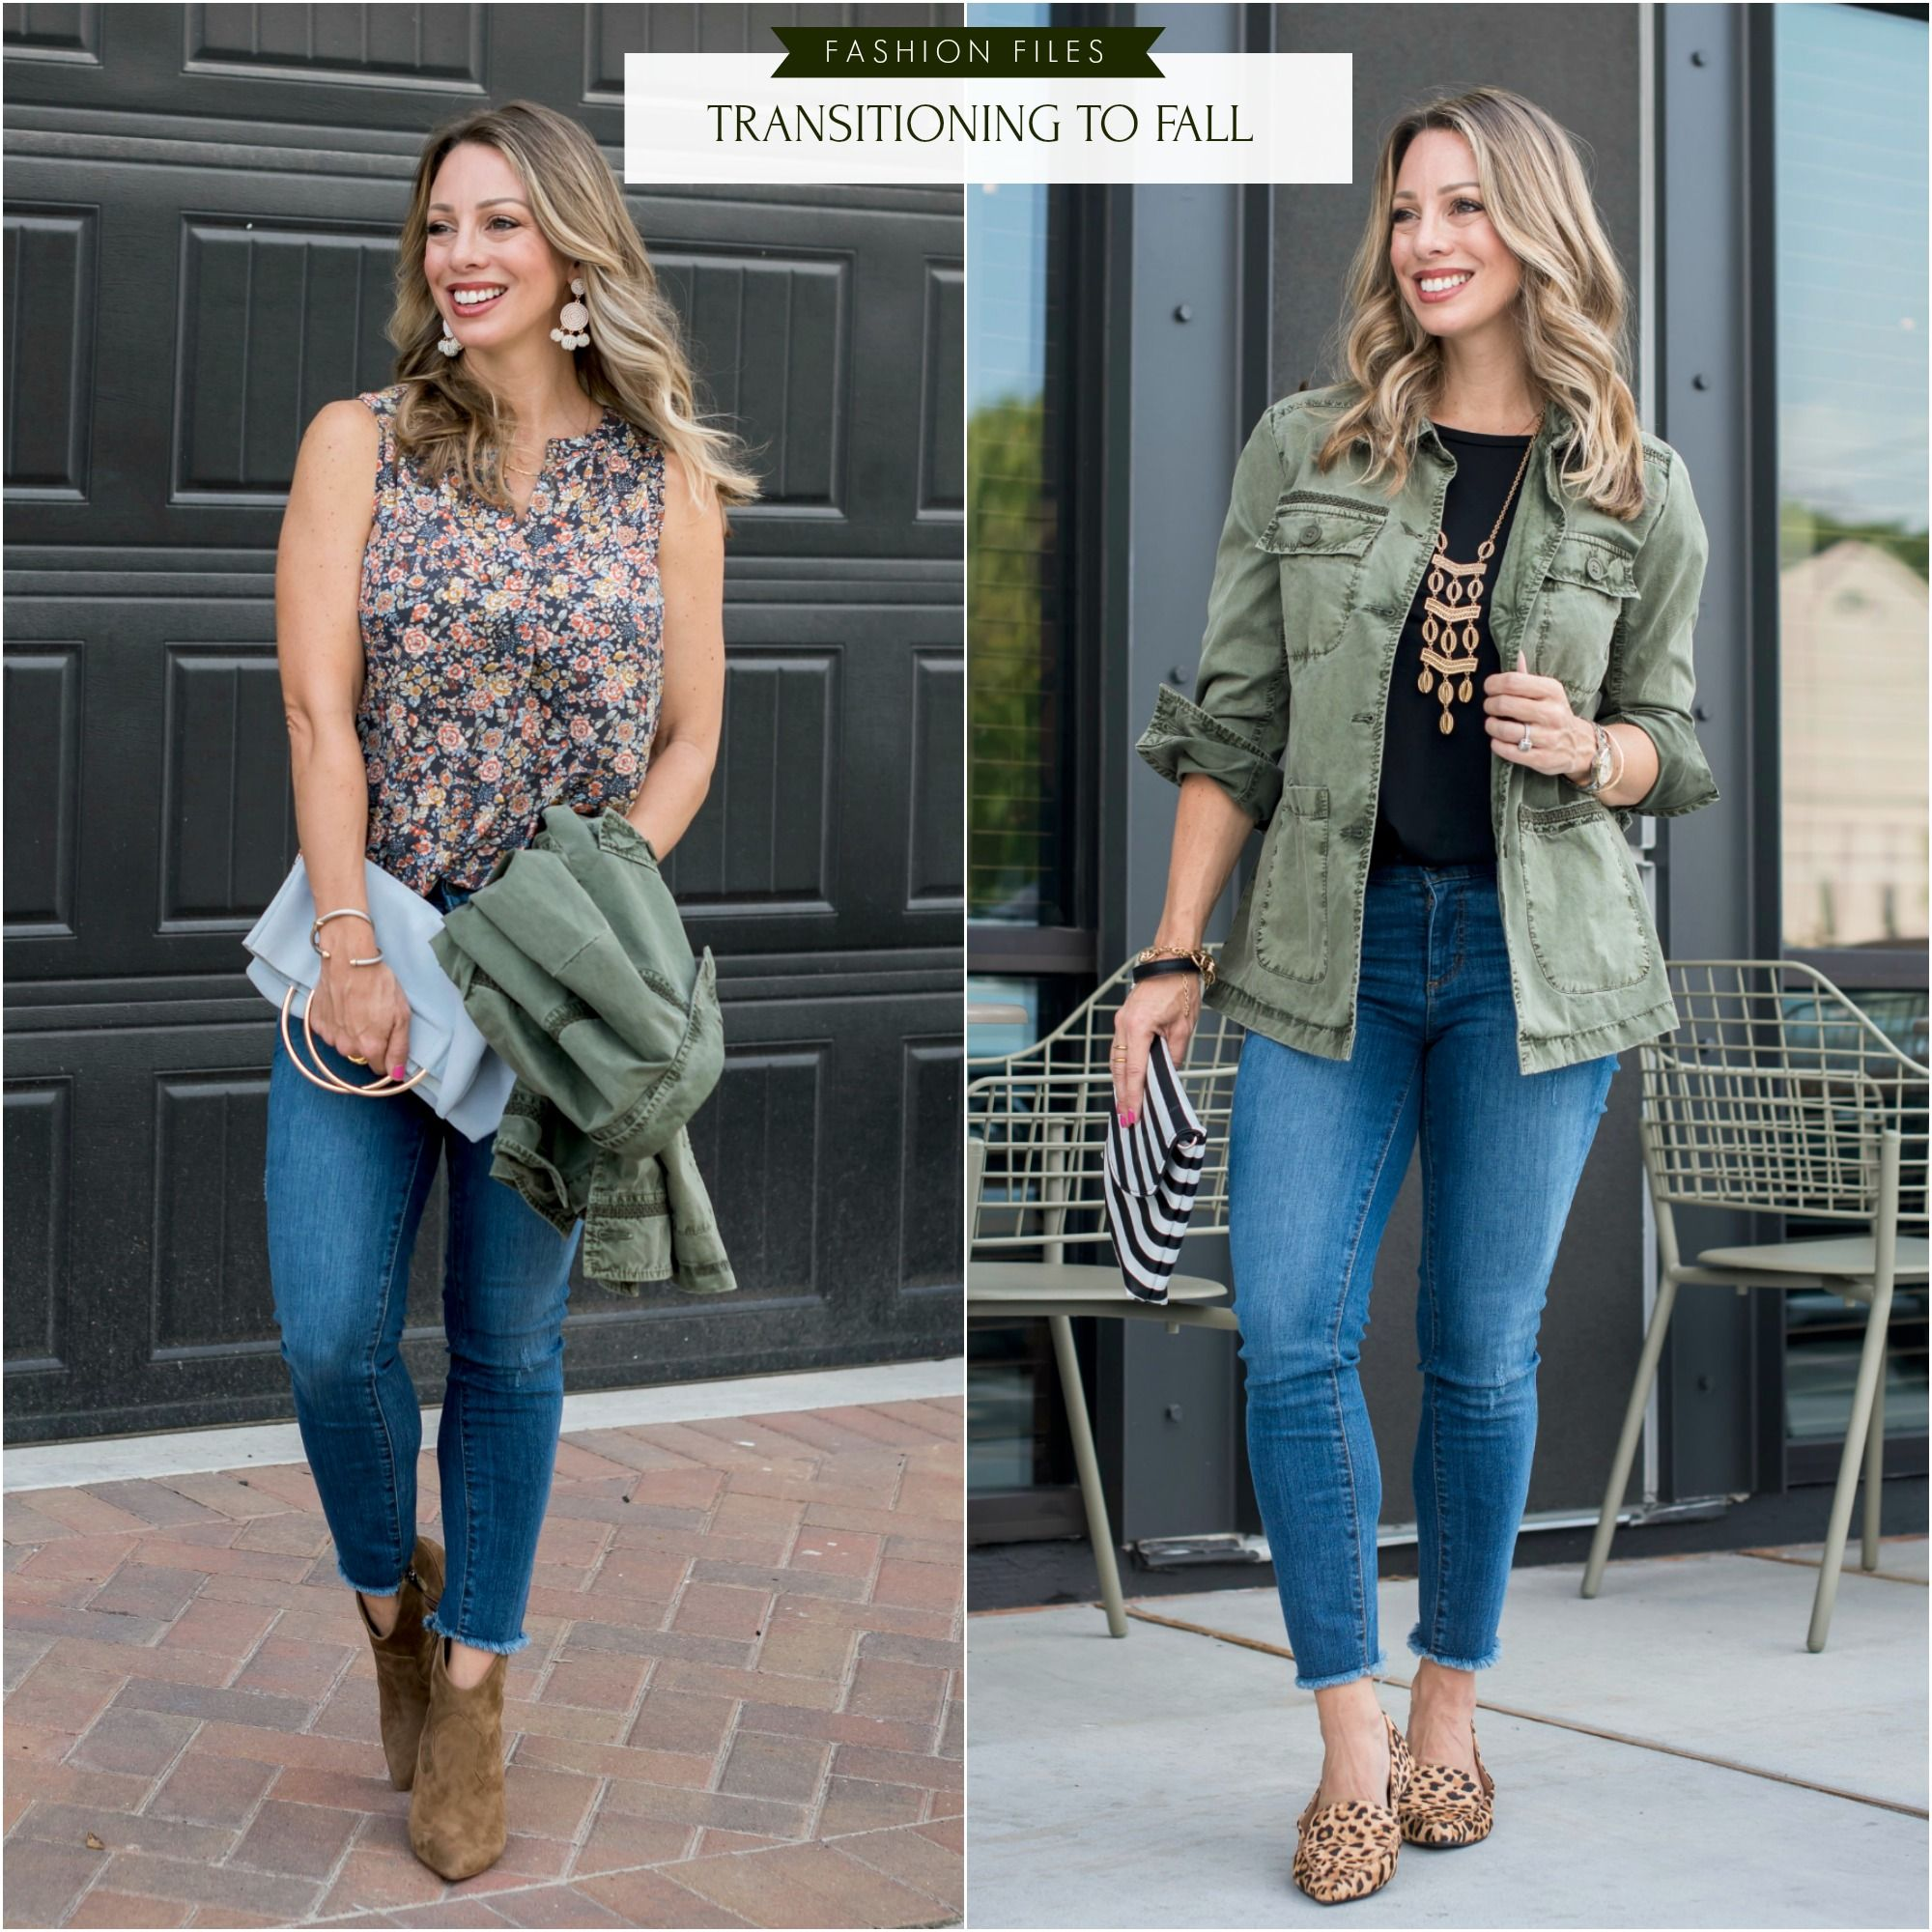 c38fec19f5 10 Key Pieces To Transition Summer Clothes to Fall